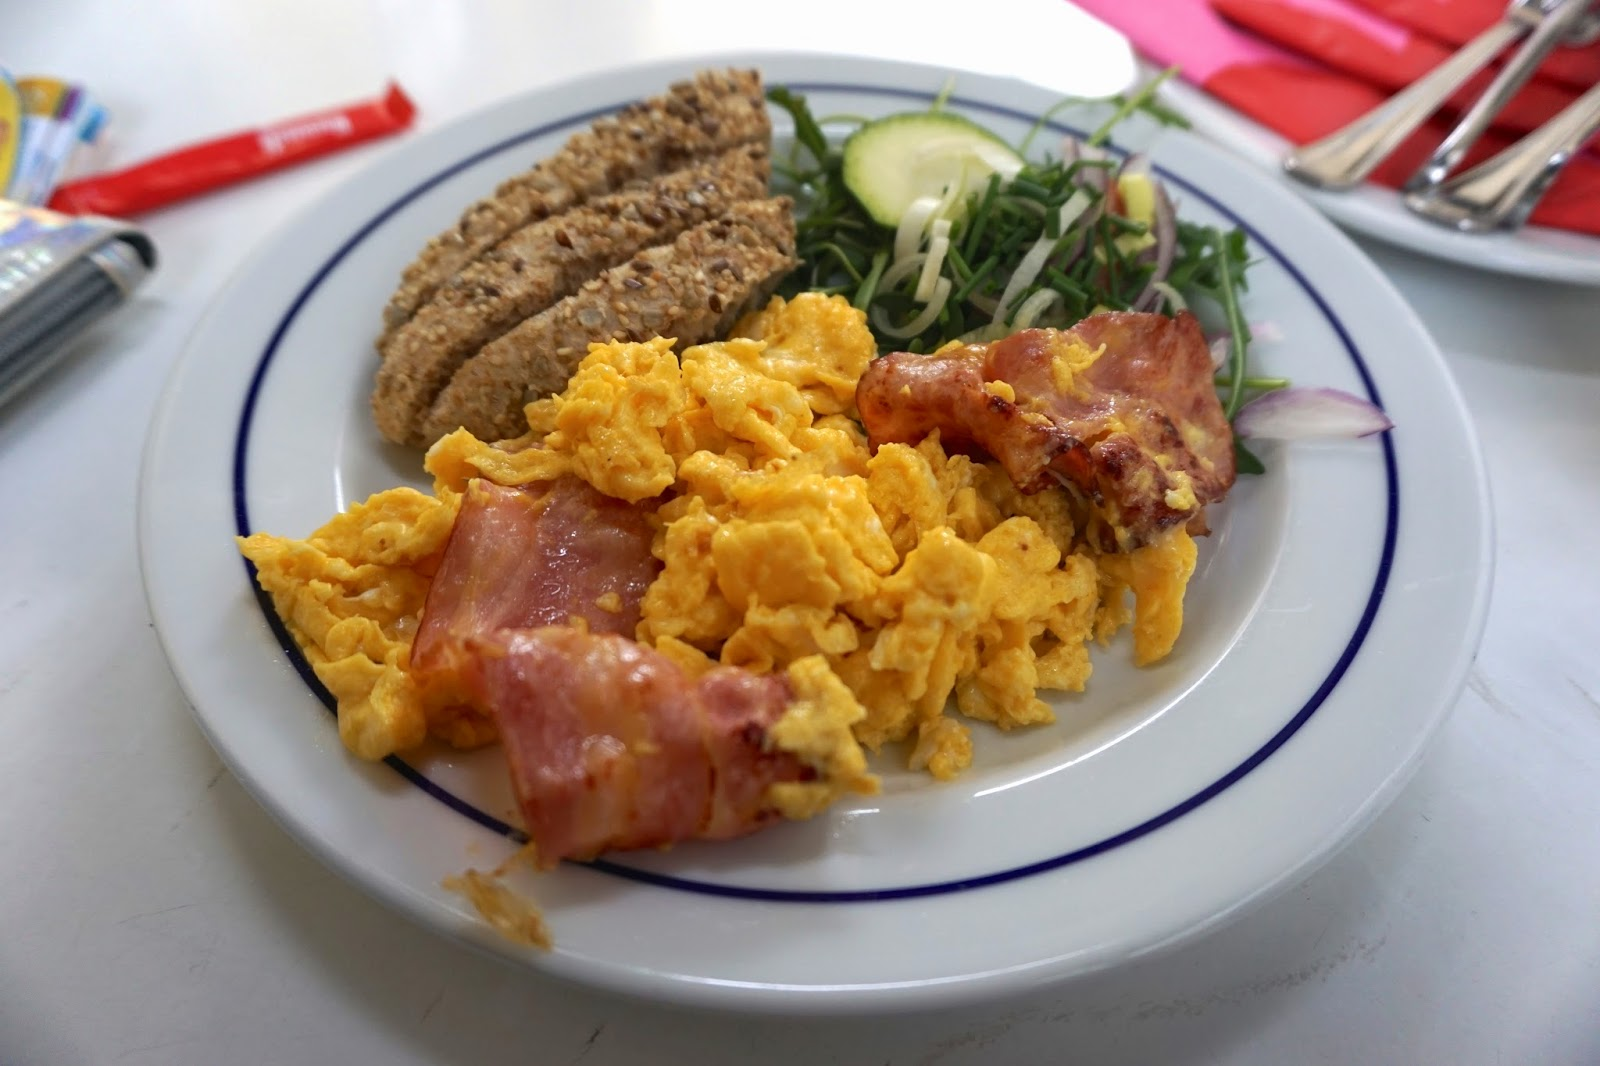 A brunch of scrambled eggs, bacon, toast and salad in Lisbon's Alfama district